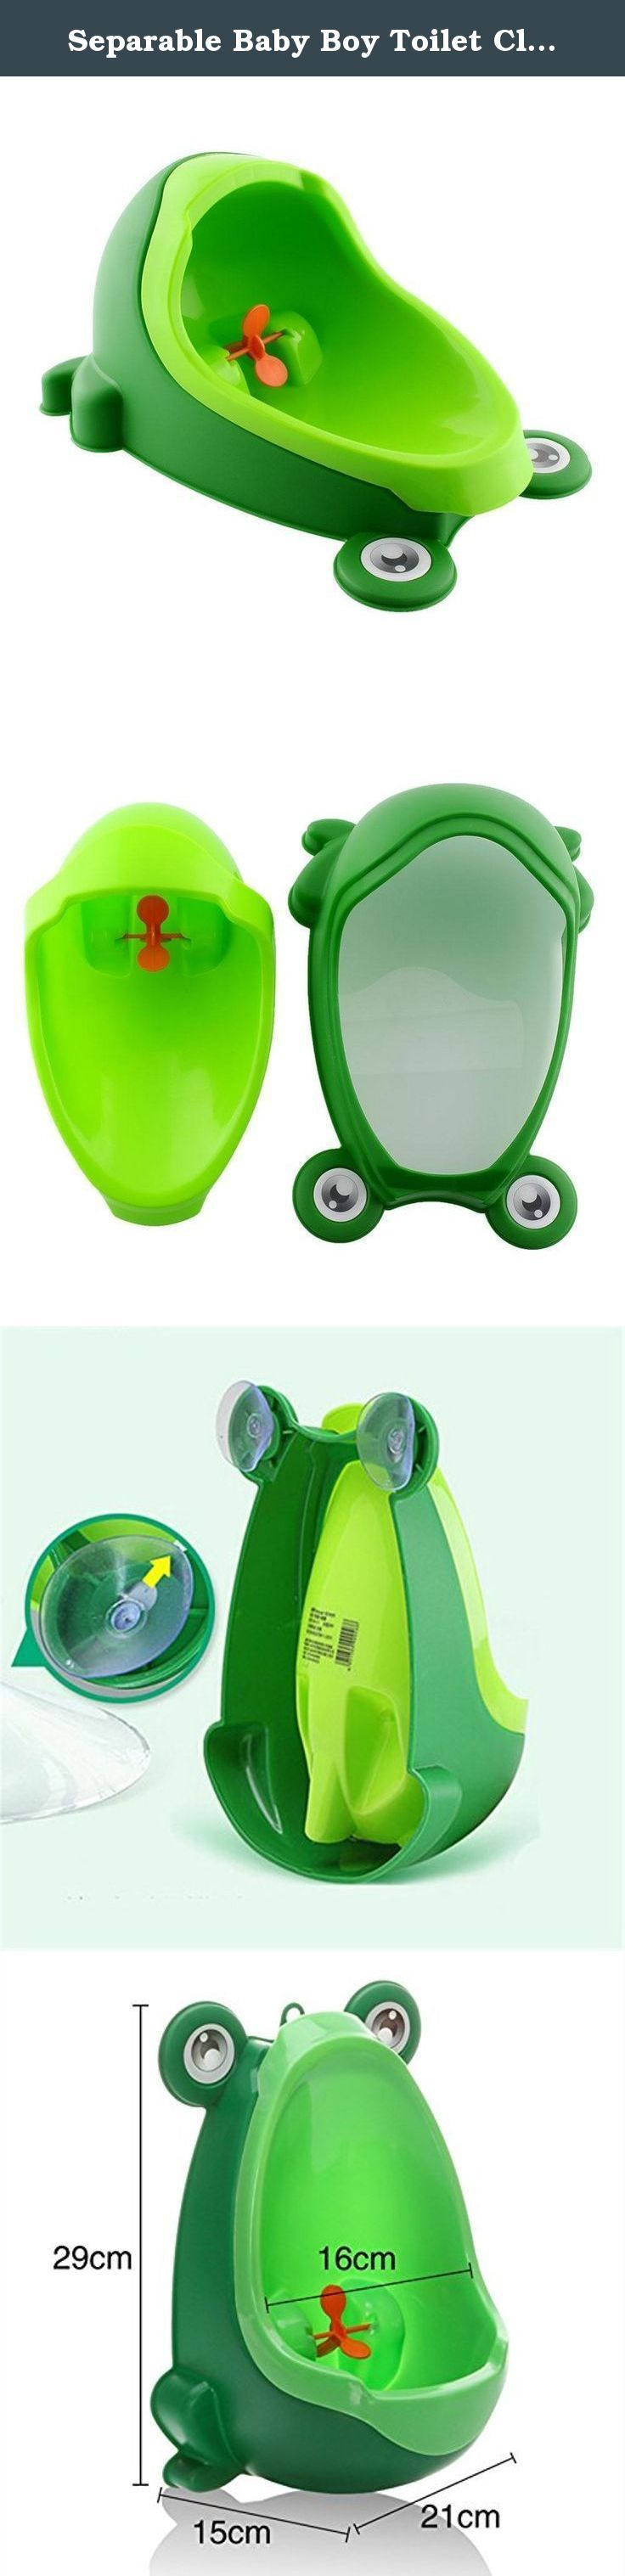 Separable Baby Boy Toilet Closet Suspensible Frog Shape Boys Standing Urinals Pee Baby Boy Portable Potty For Kids Infant Penico. About the Product Toilet Training for Boys between the Ages from 1 to10 years Adjustable Height - Removable Bowl Insert Easy to Clean and Hygienic item - 1000ml high capacity removable urinal Super Suction Cup - Sticks to Tiles and Glass - Firm and Reliable. Size: 8.3 x 6.7 x 11.8(LxWxH)inch Material: PP (Polypropylene) Product Description Color: Green Why you...